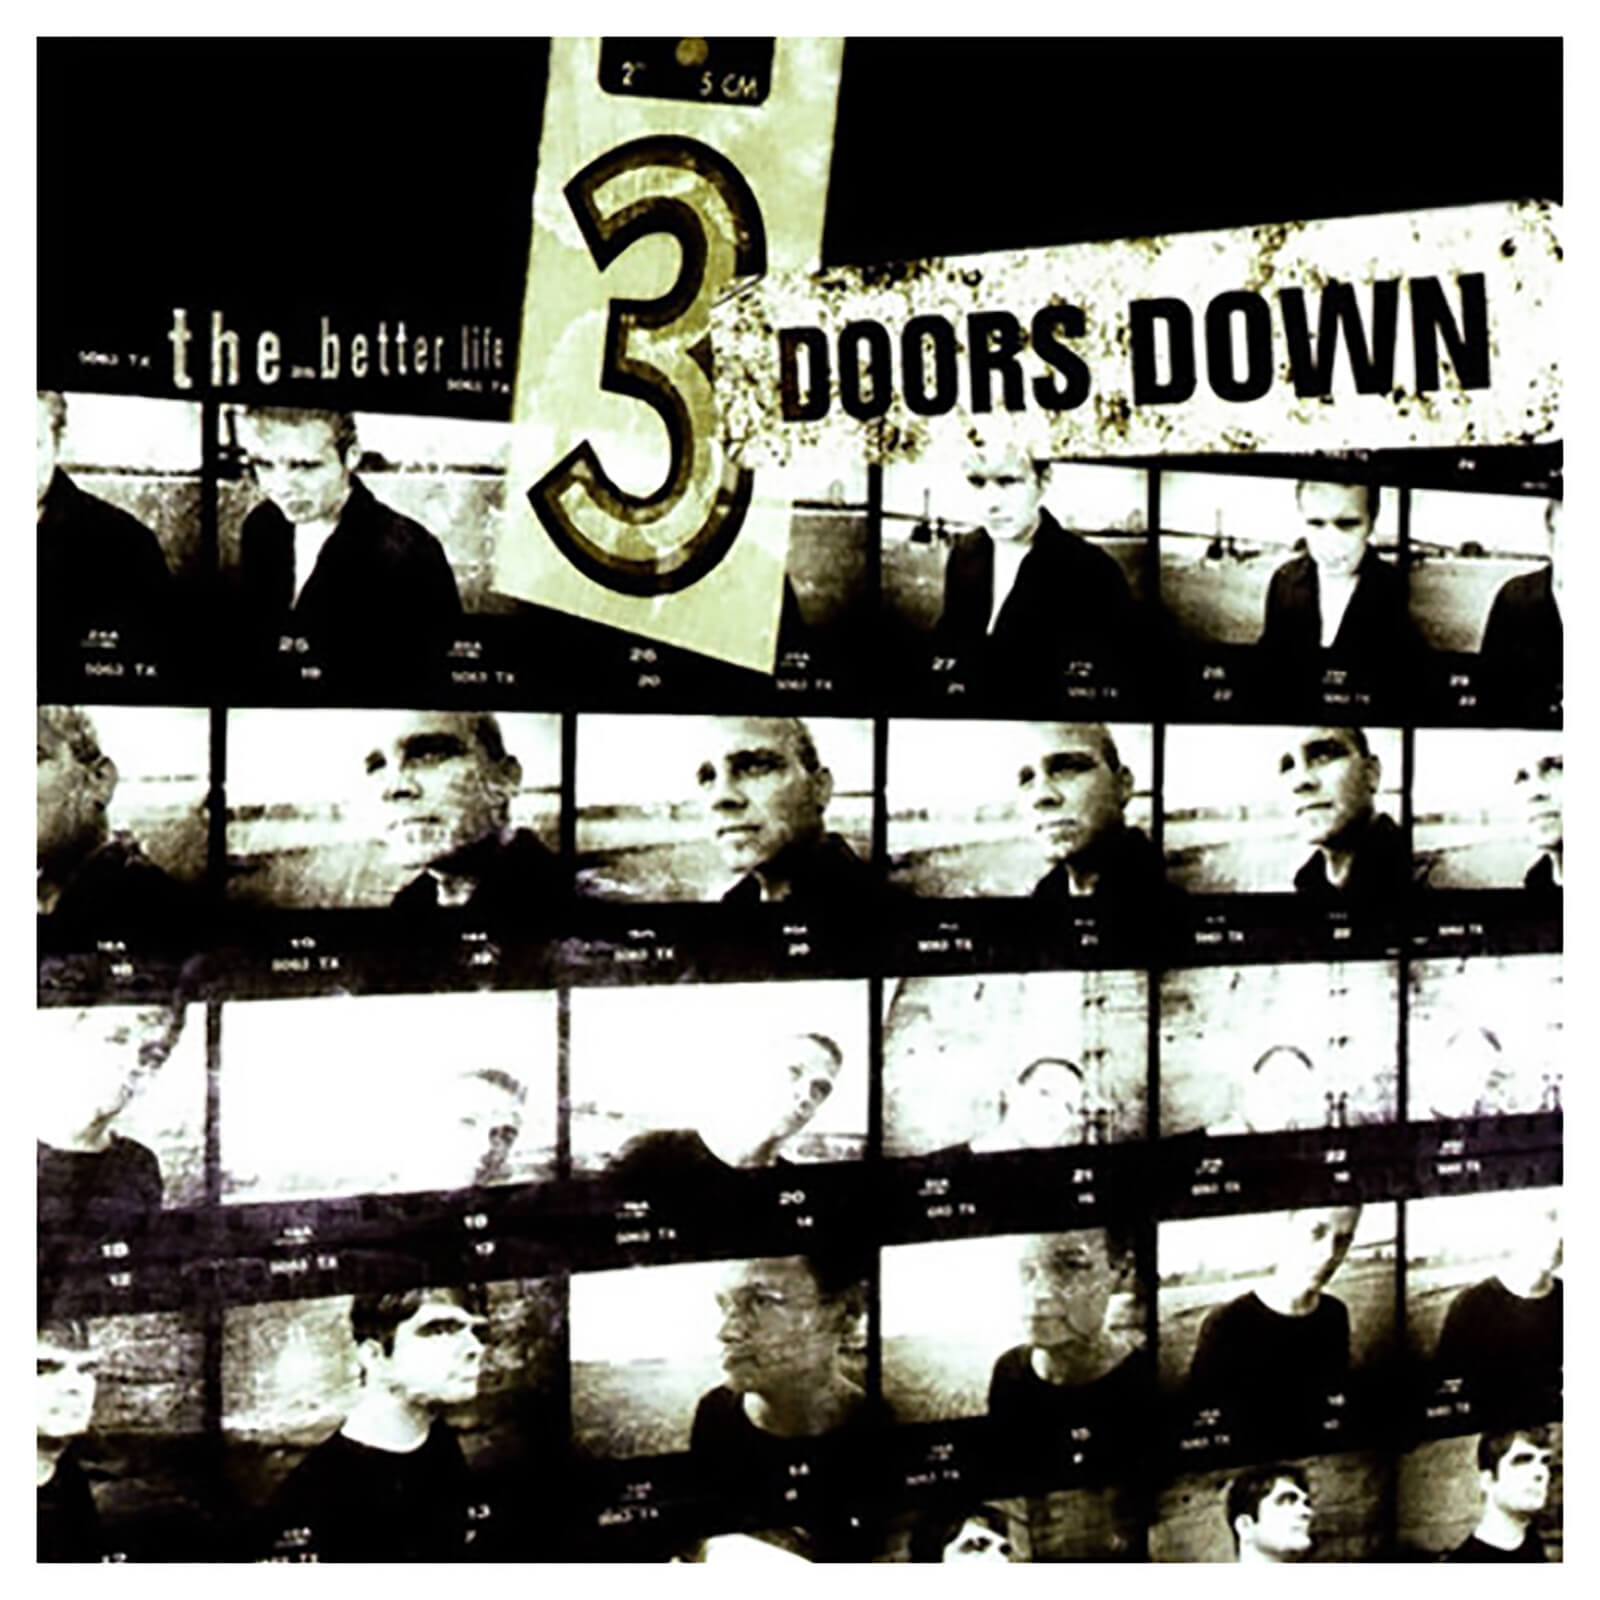 3 Doors Down - Better Life - Vinyl